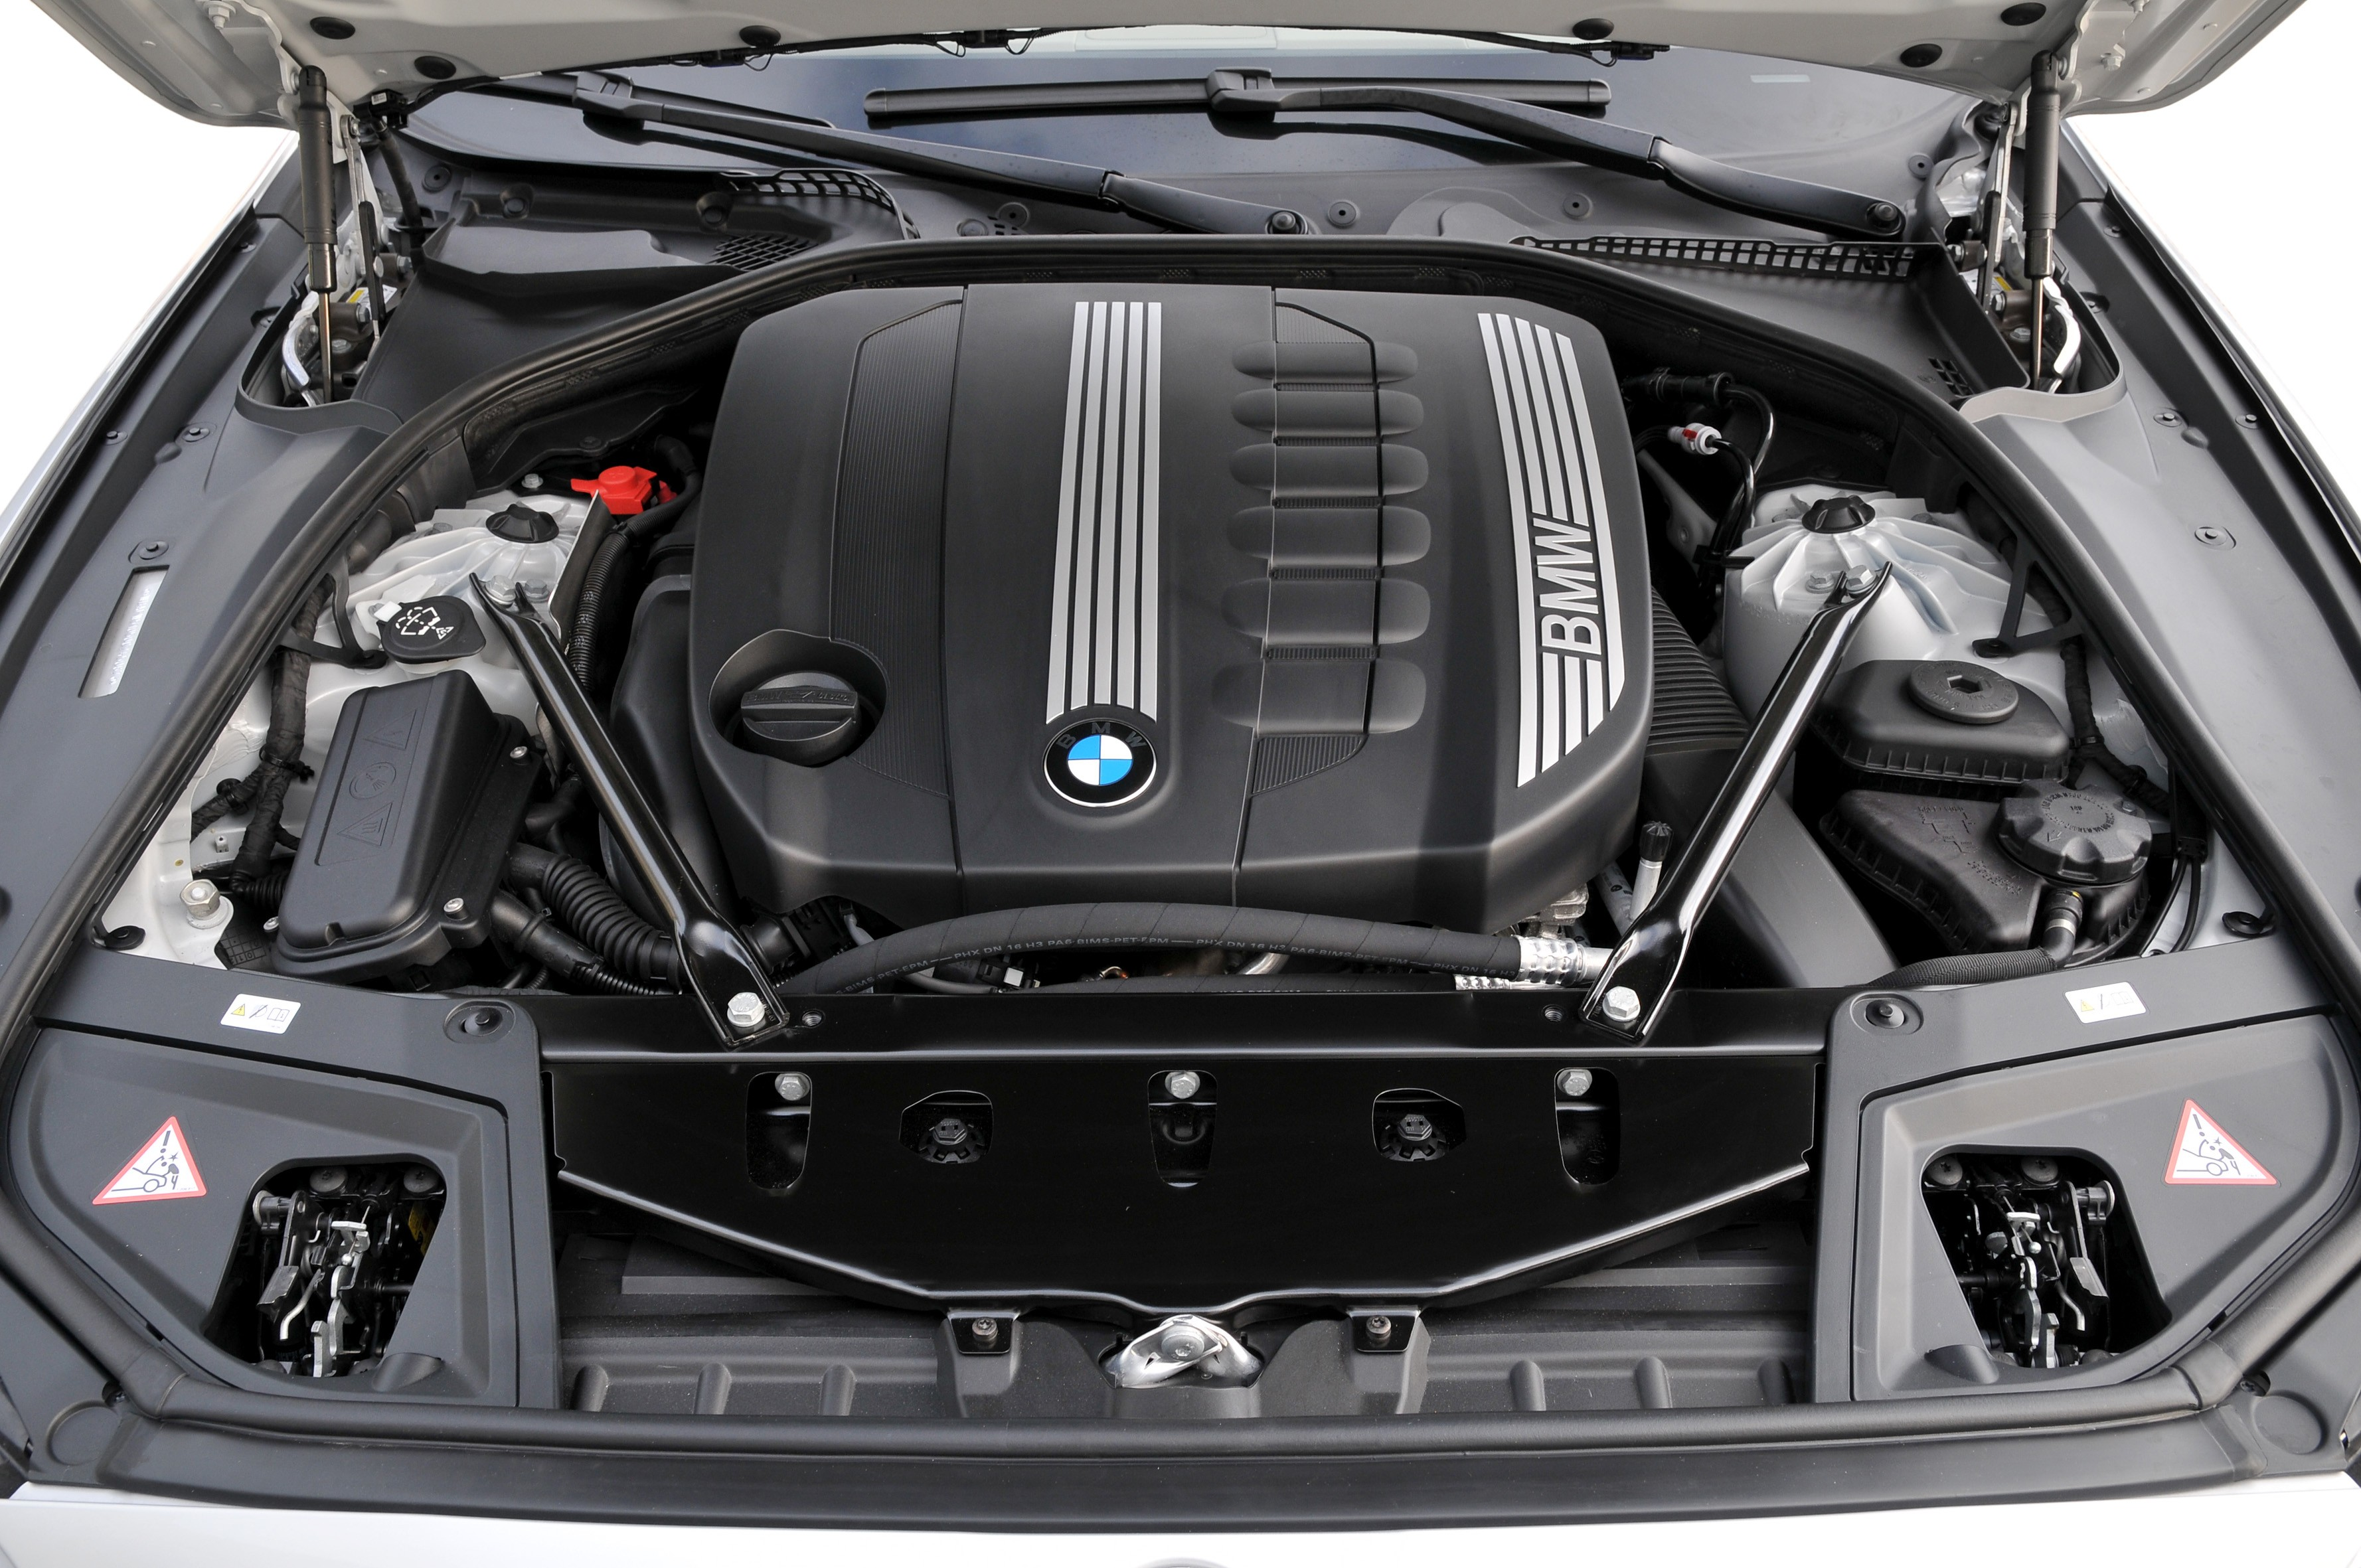 New 2011 BMW 530d Review - TDIClub Forums